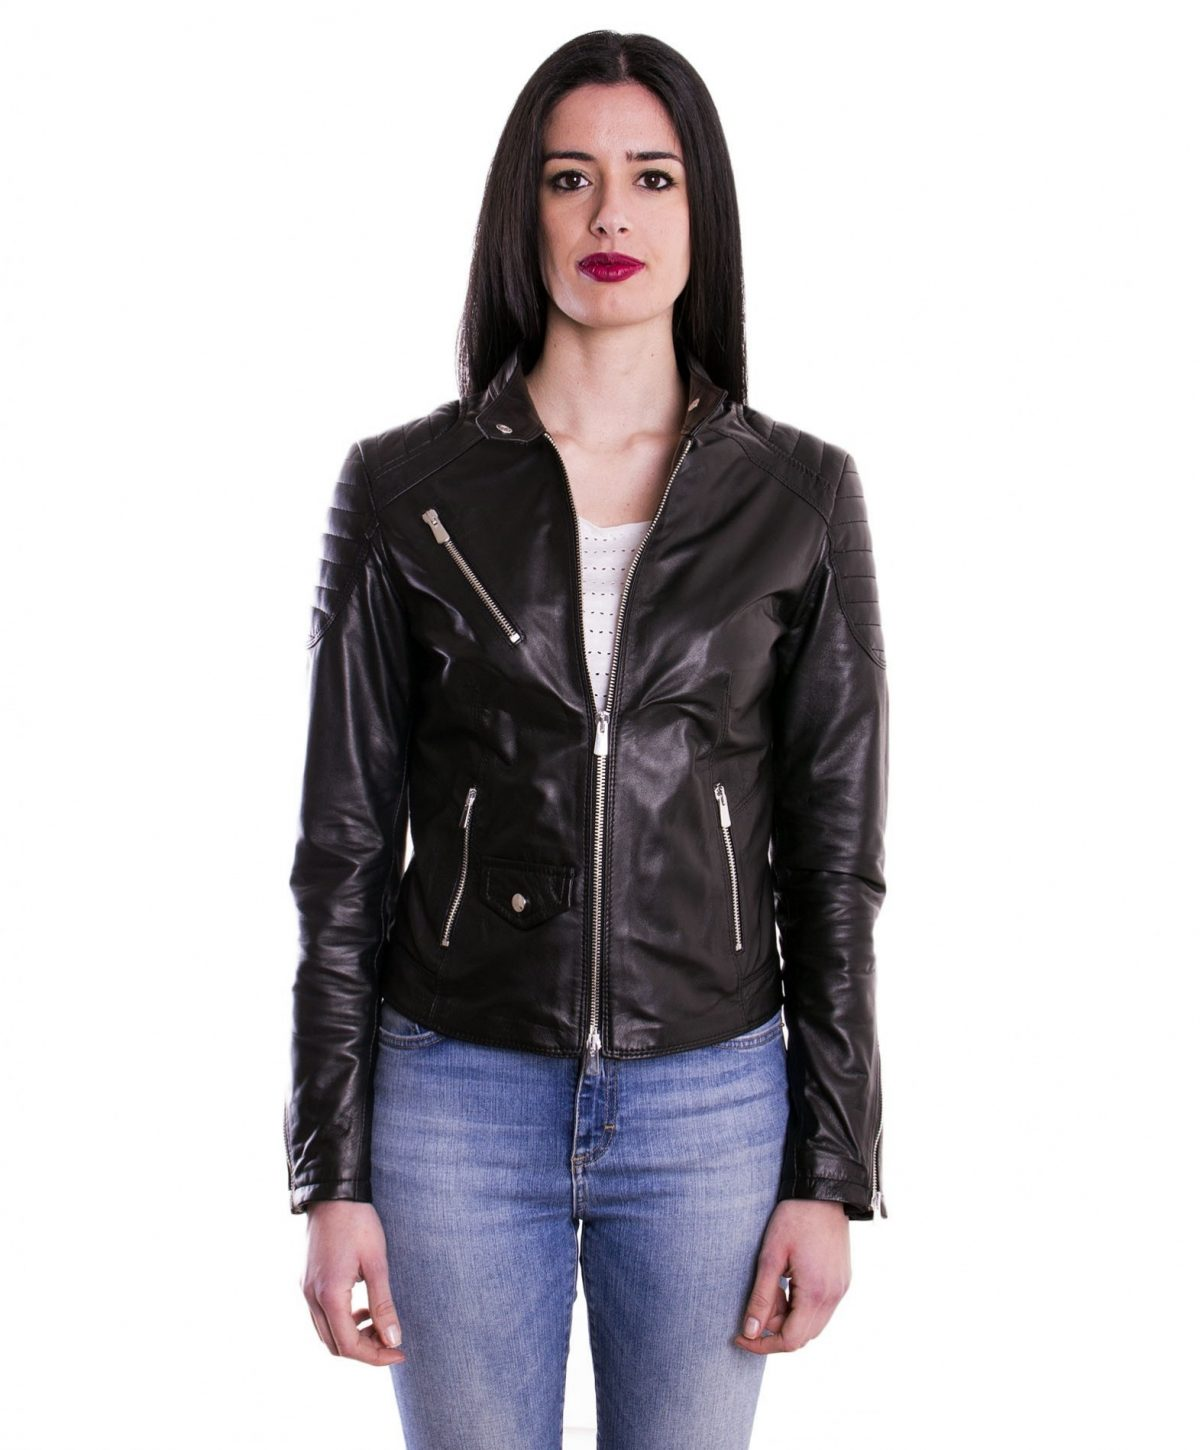 Black Color Lamb Leather Quilted Biker Jacket Smooth Effect